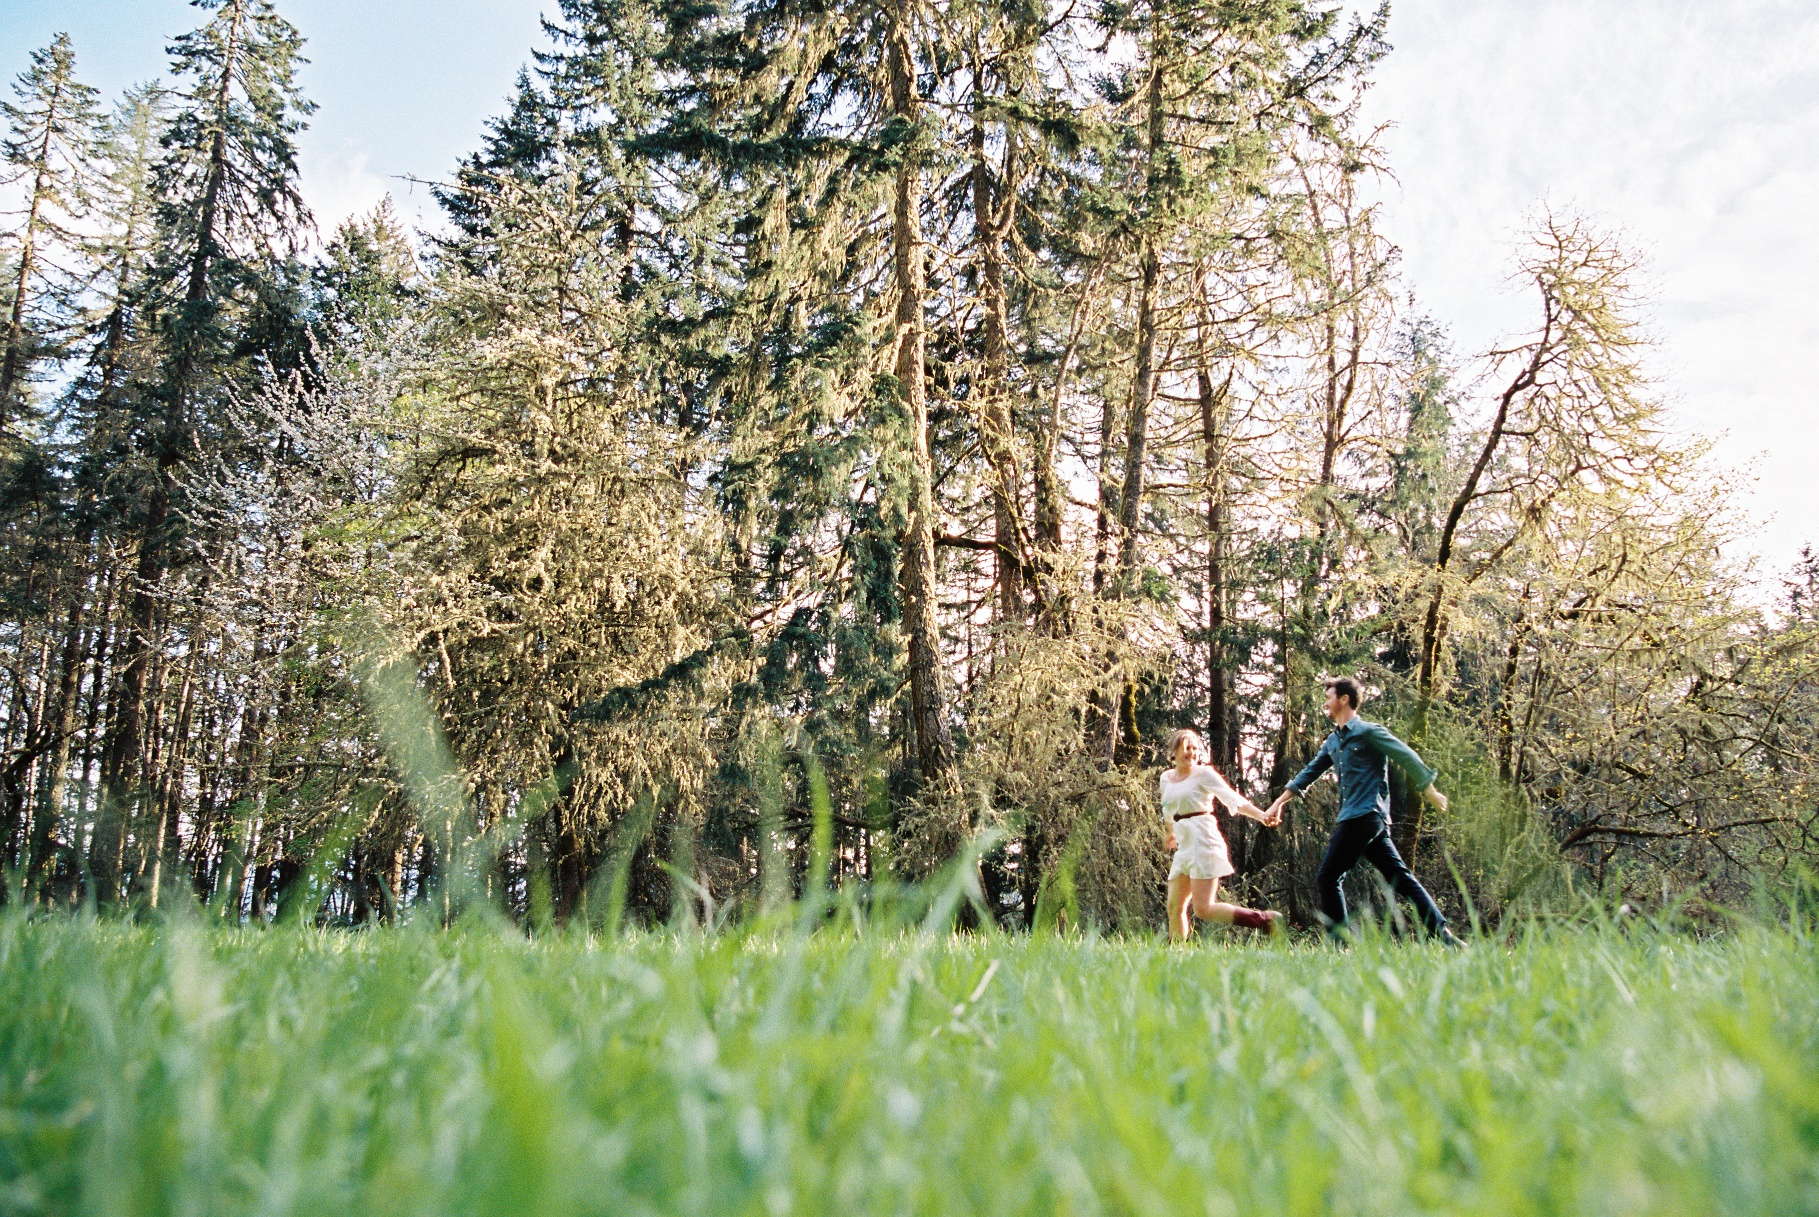 seattle wedding photographer engagement photo photos eugene oregon spenders butte woods trees grass light sunlight sun film photographer running in field